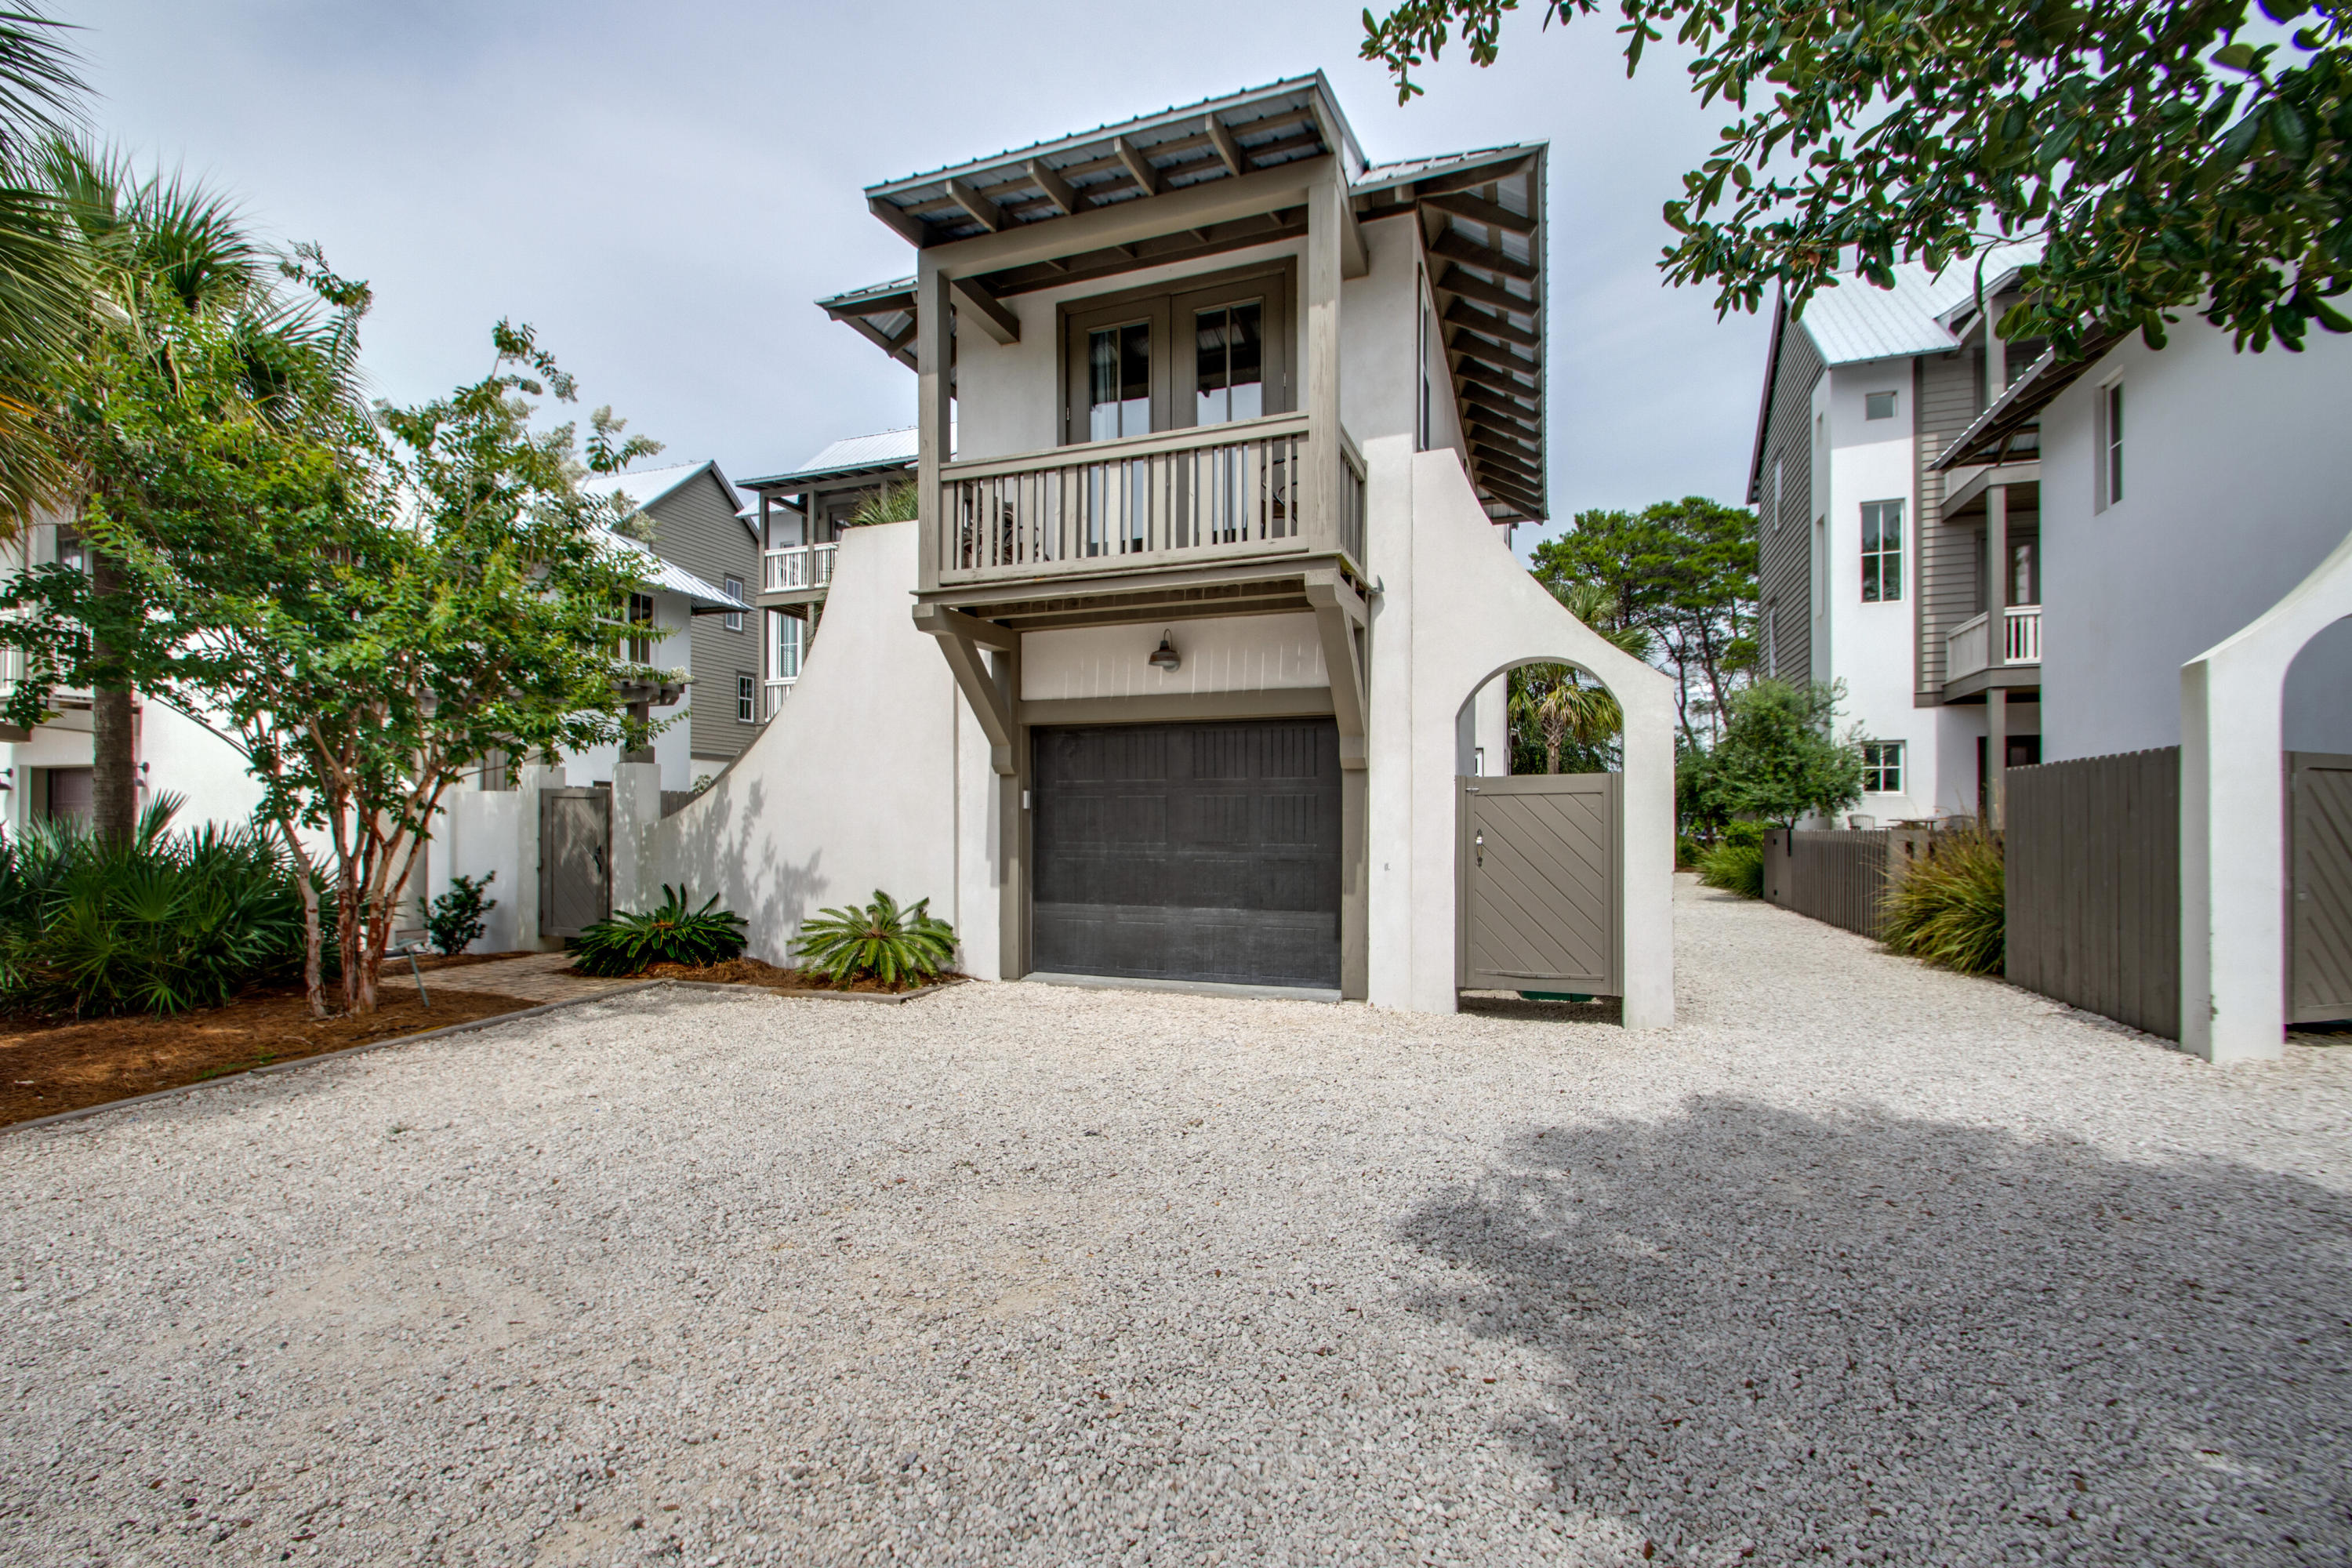 Located adjacent to Rosemary Beach and a short walk to the Winston Lane beach access, this home is a